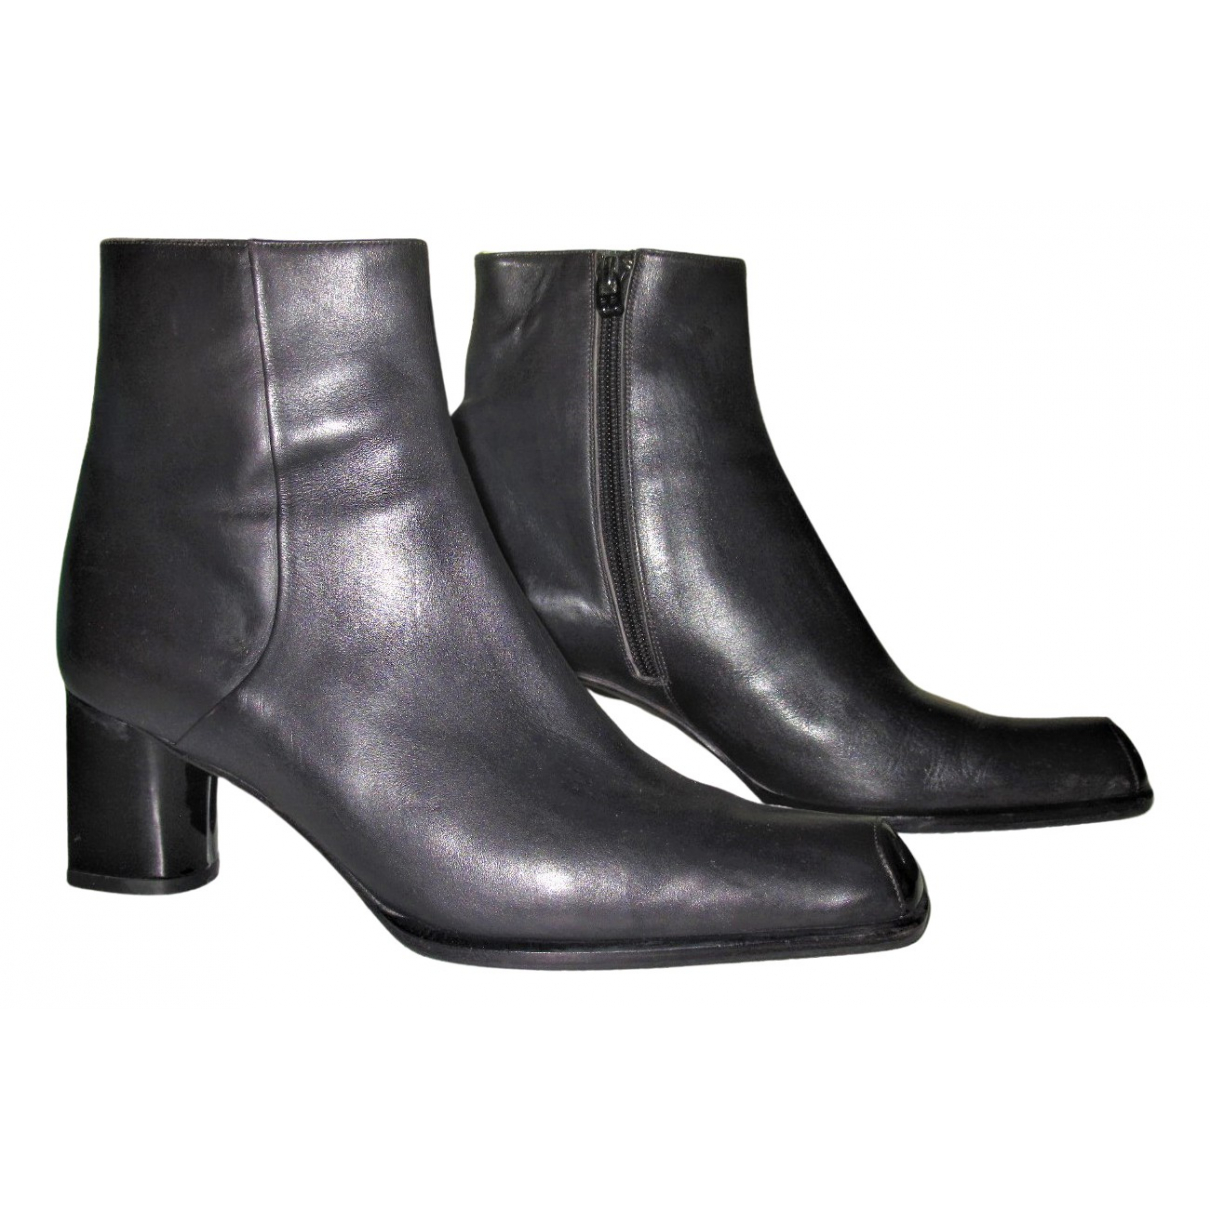 Bally N Black Leather Boots for Women 6 UK